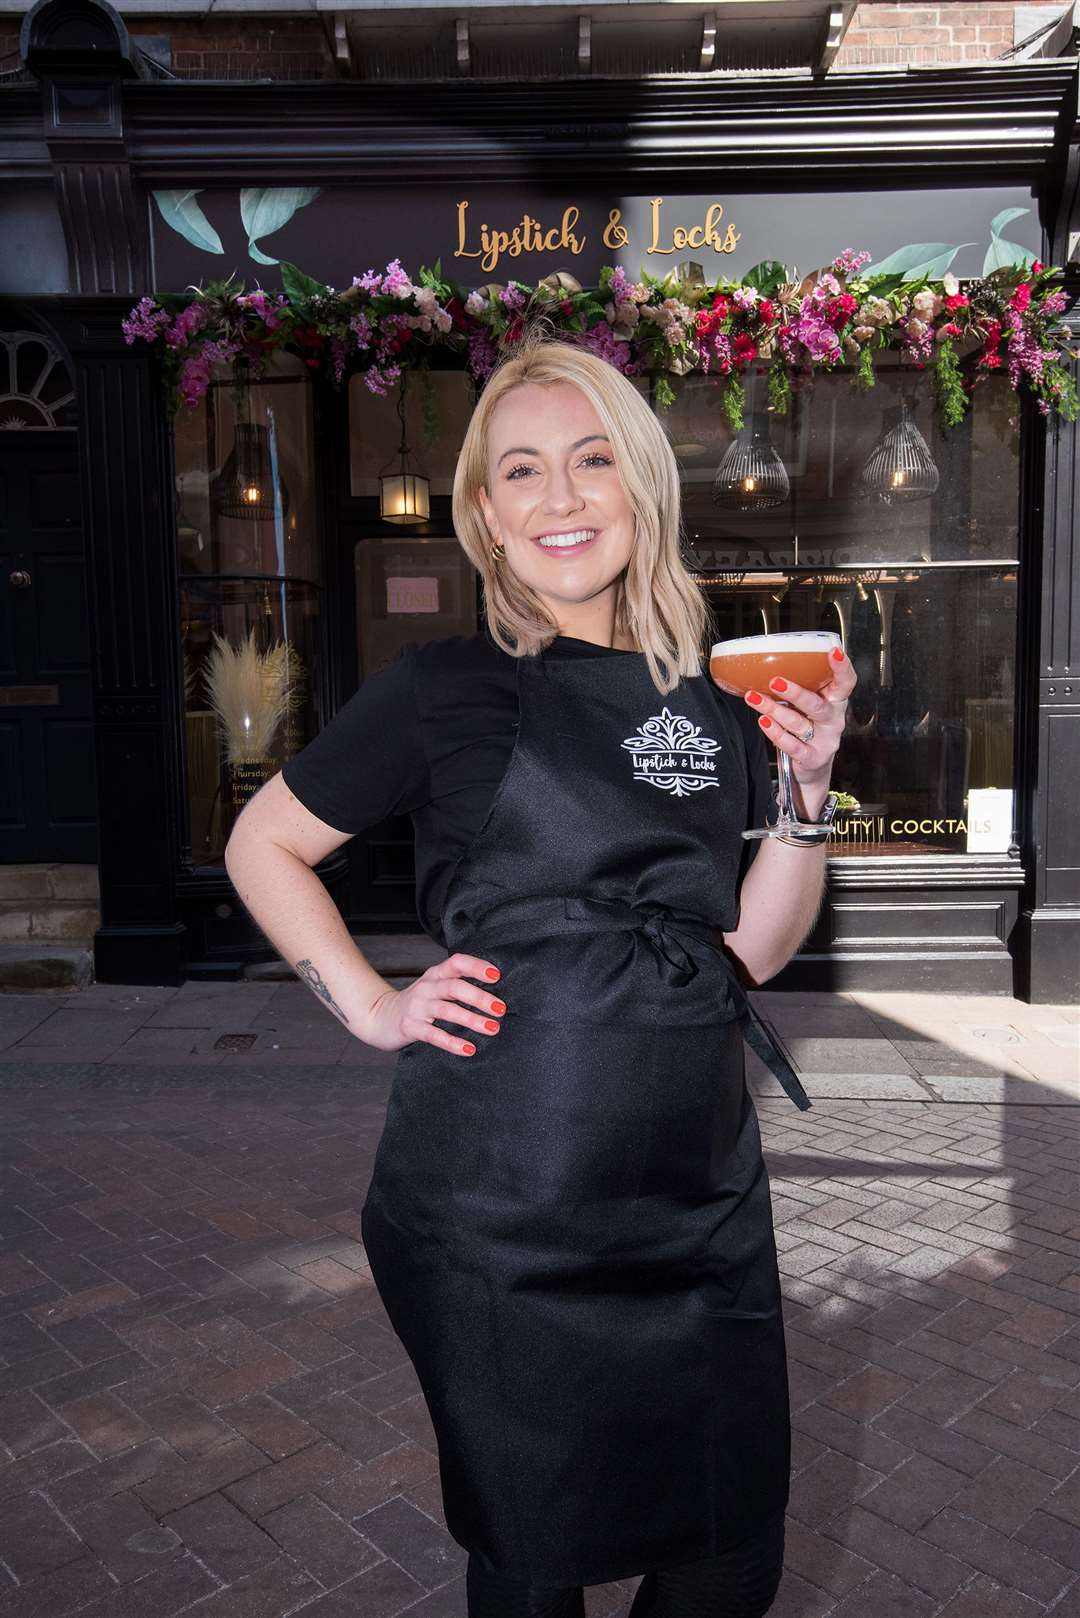 Abi Cutter, of Lipstick and Locks, raises a glass ahead of opening. Picture: Mark Westley